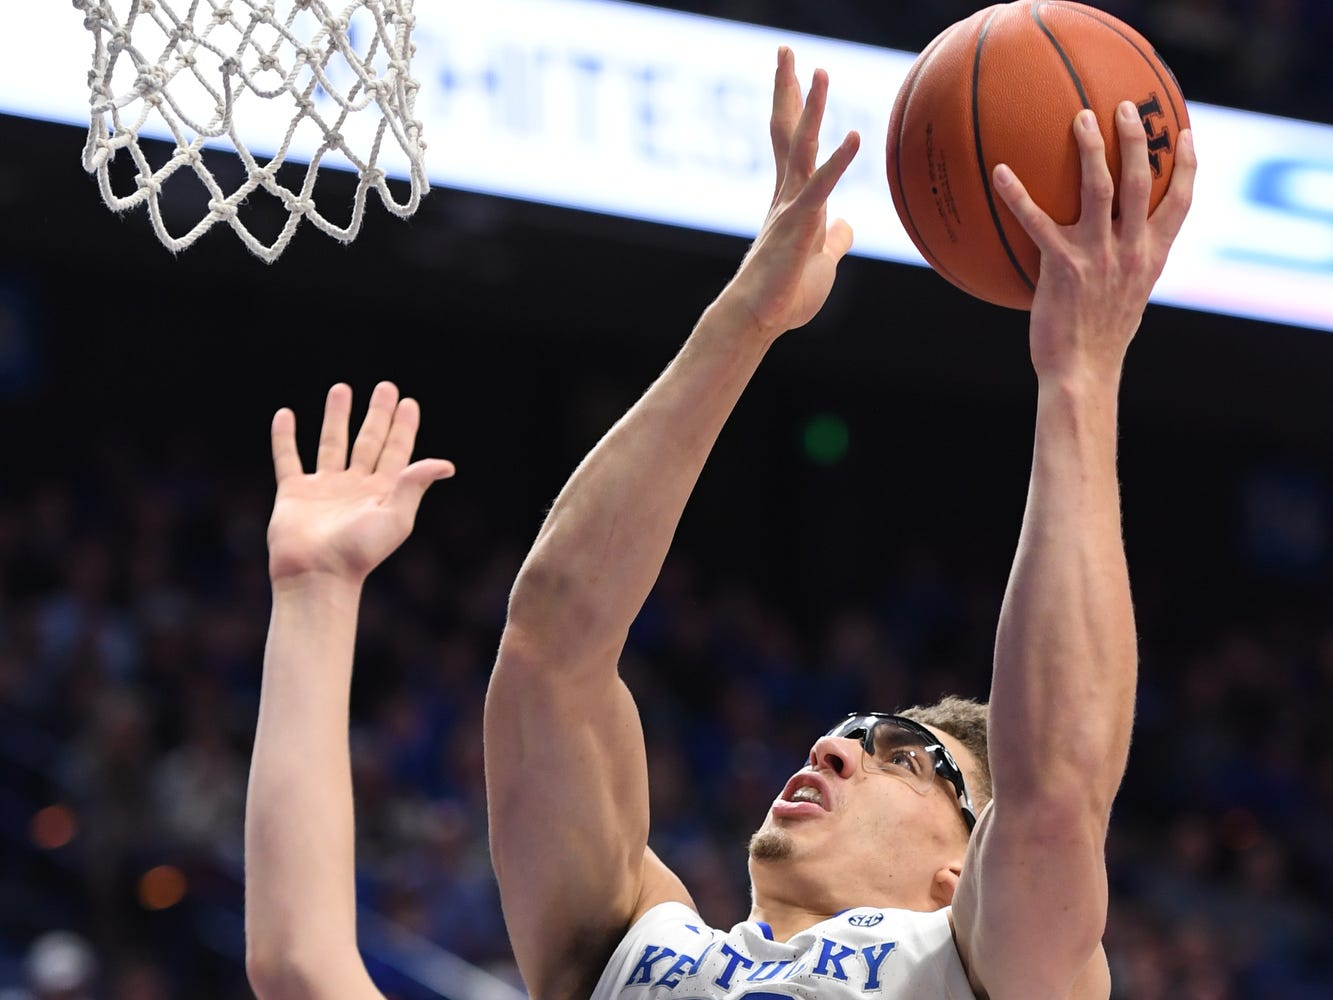 UK F Reid Travis goes up strong with the ball during the University of Kentucky mens basketball game against VMI at Rupp Arena in Lexington, Kentucky on Sunday, November 18, 2018.